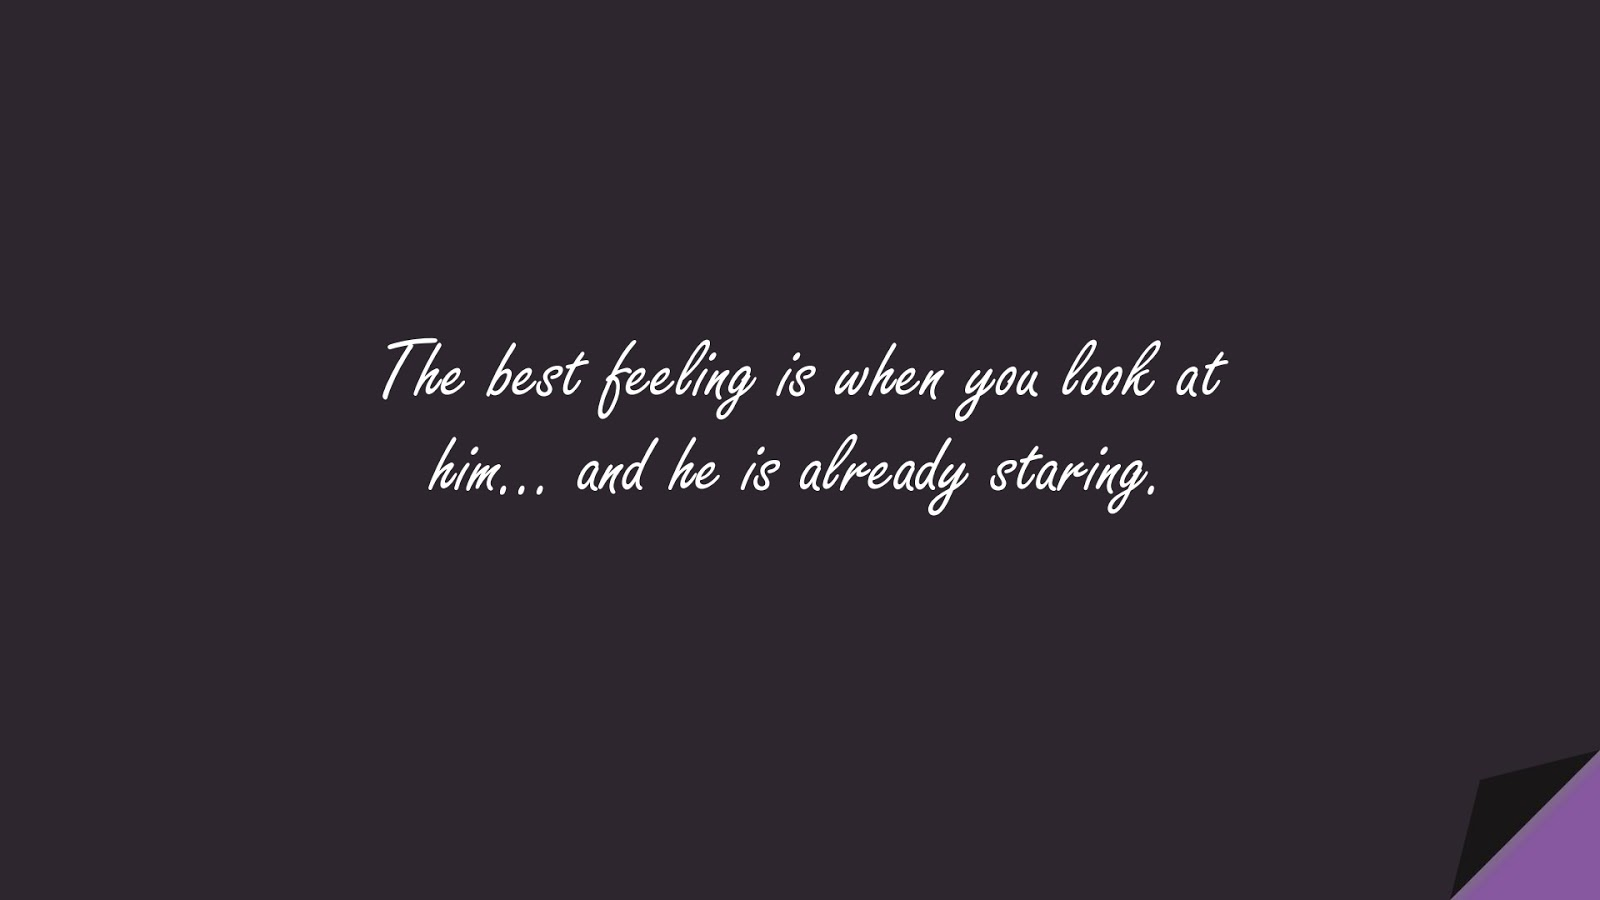 The best feeling is when you look at him… and he is already staring.FALSE